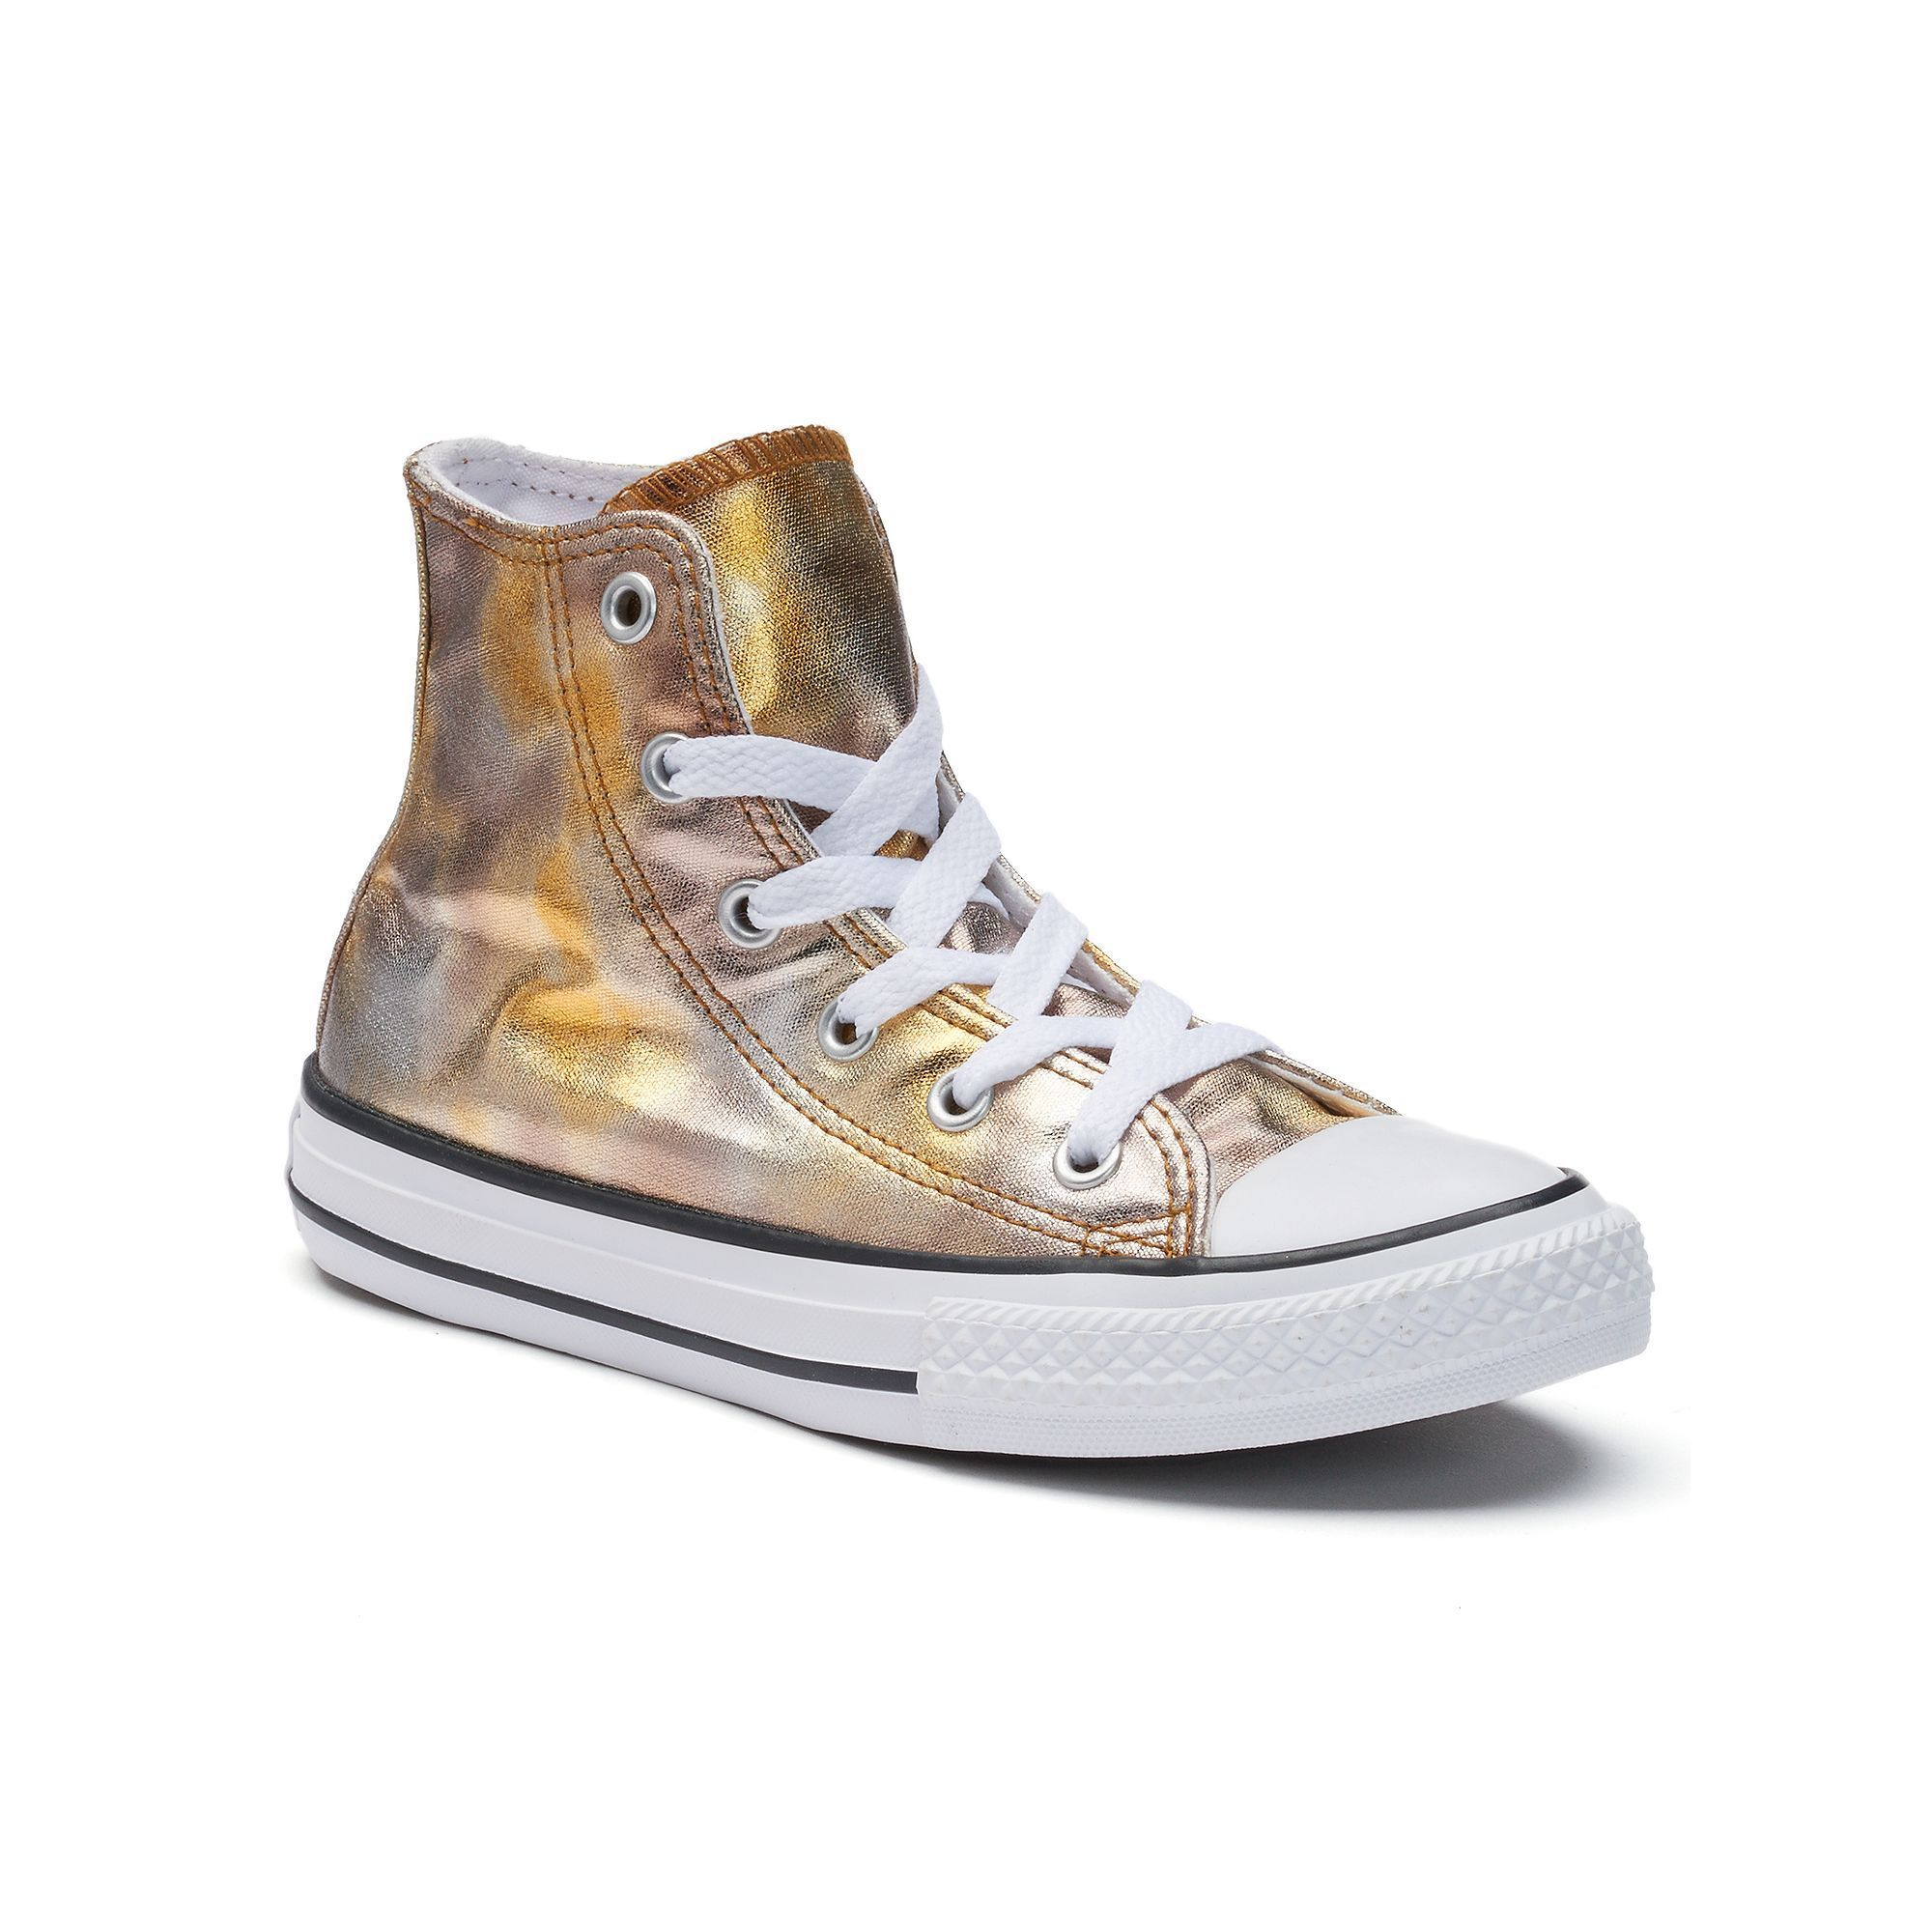 Girls  Converse Chuck Taylor All Star Metallic High Top Sneakers ... 35ad3d0c7